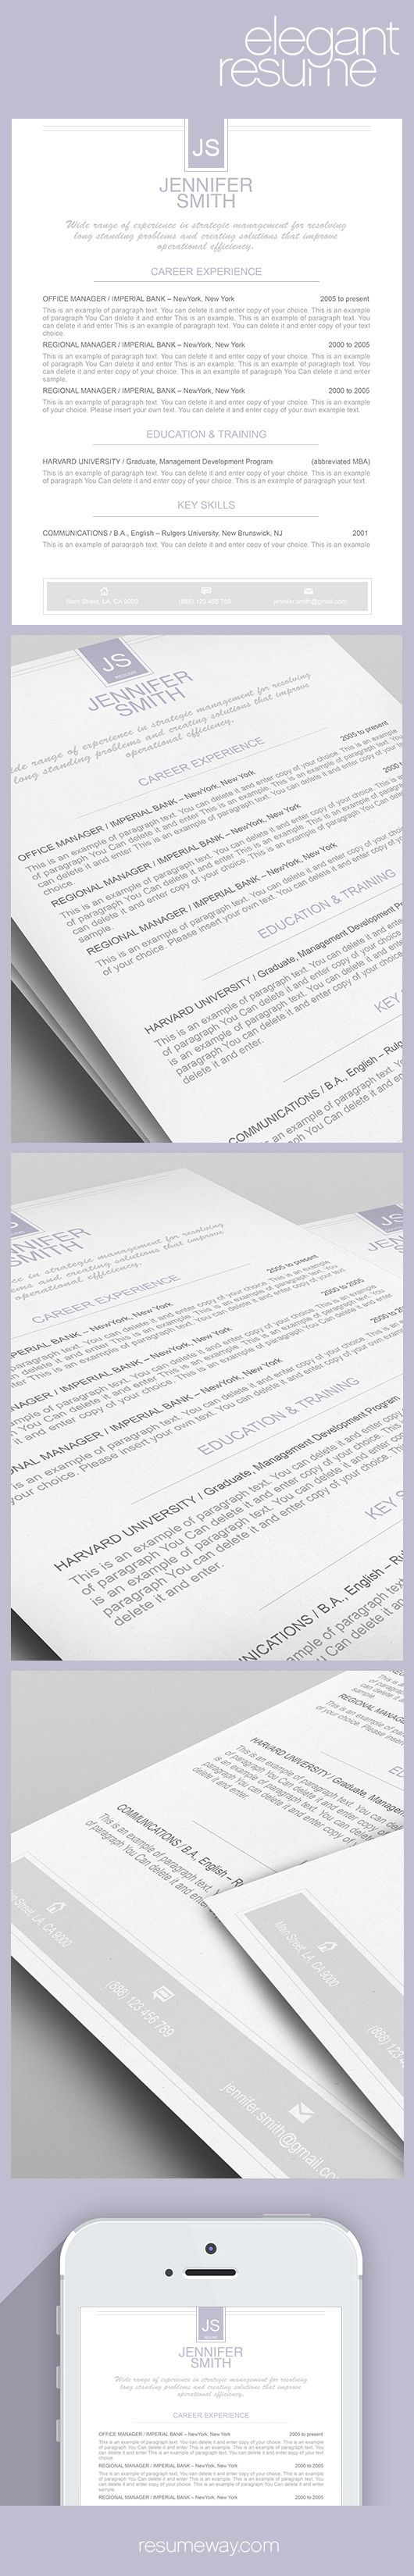 best images about resume tips writing editing designing professional resume templates ready to edit and print resume cover letter templates edit in microsoft word apple pages